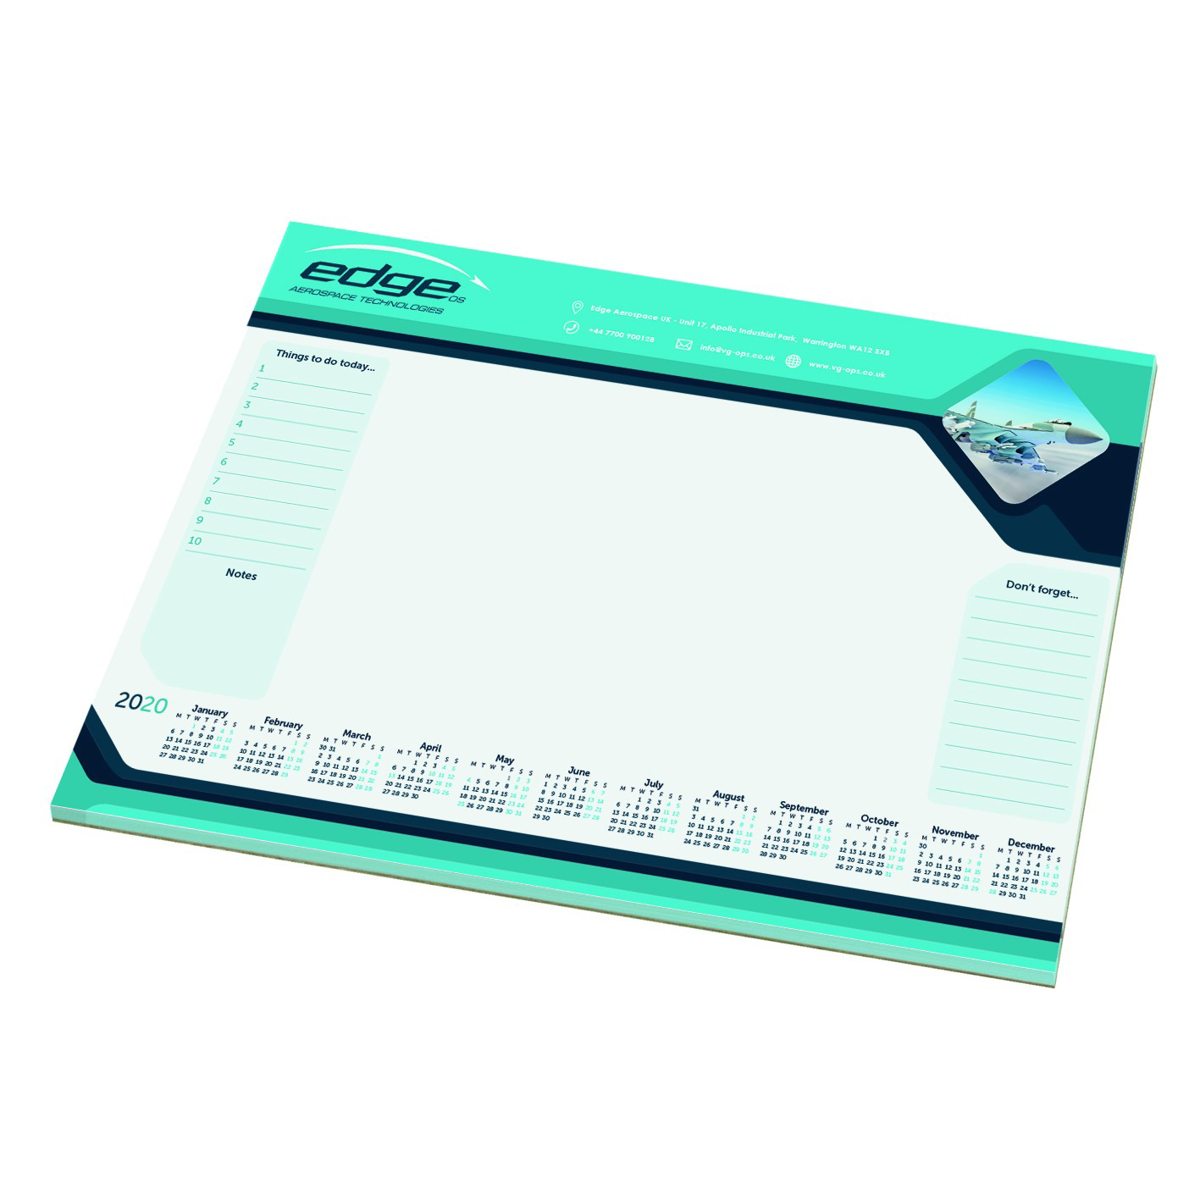 A3 Desk Pad - Standard Design 11